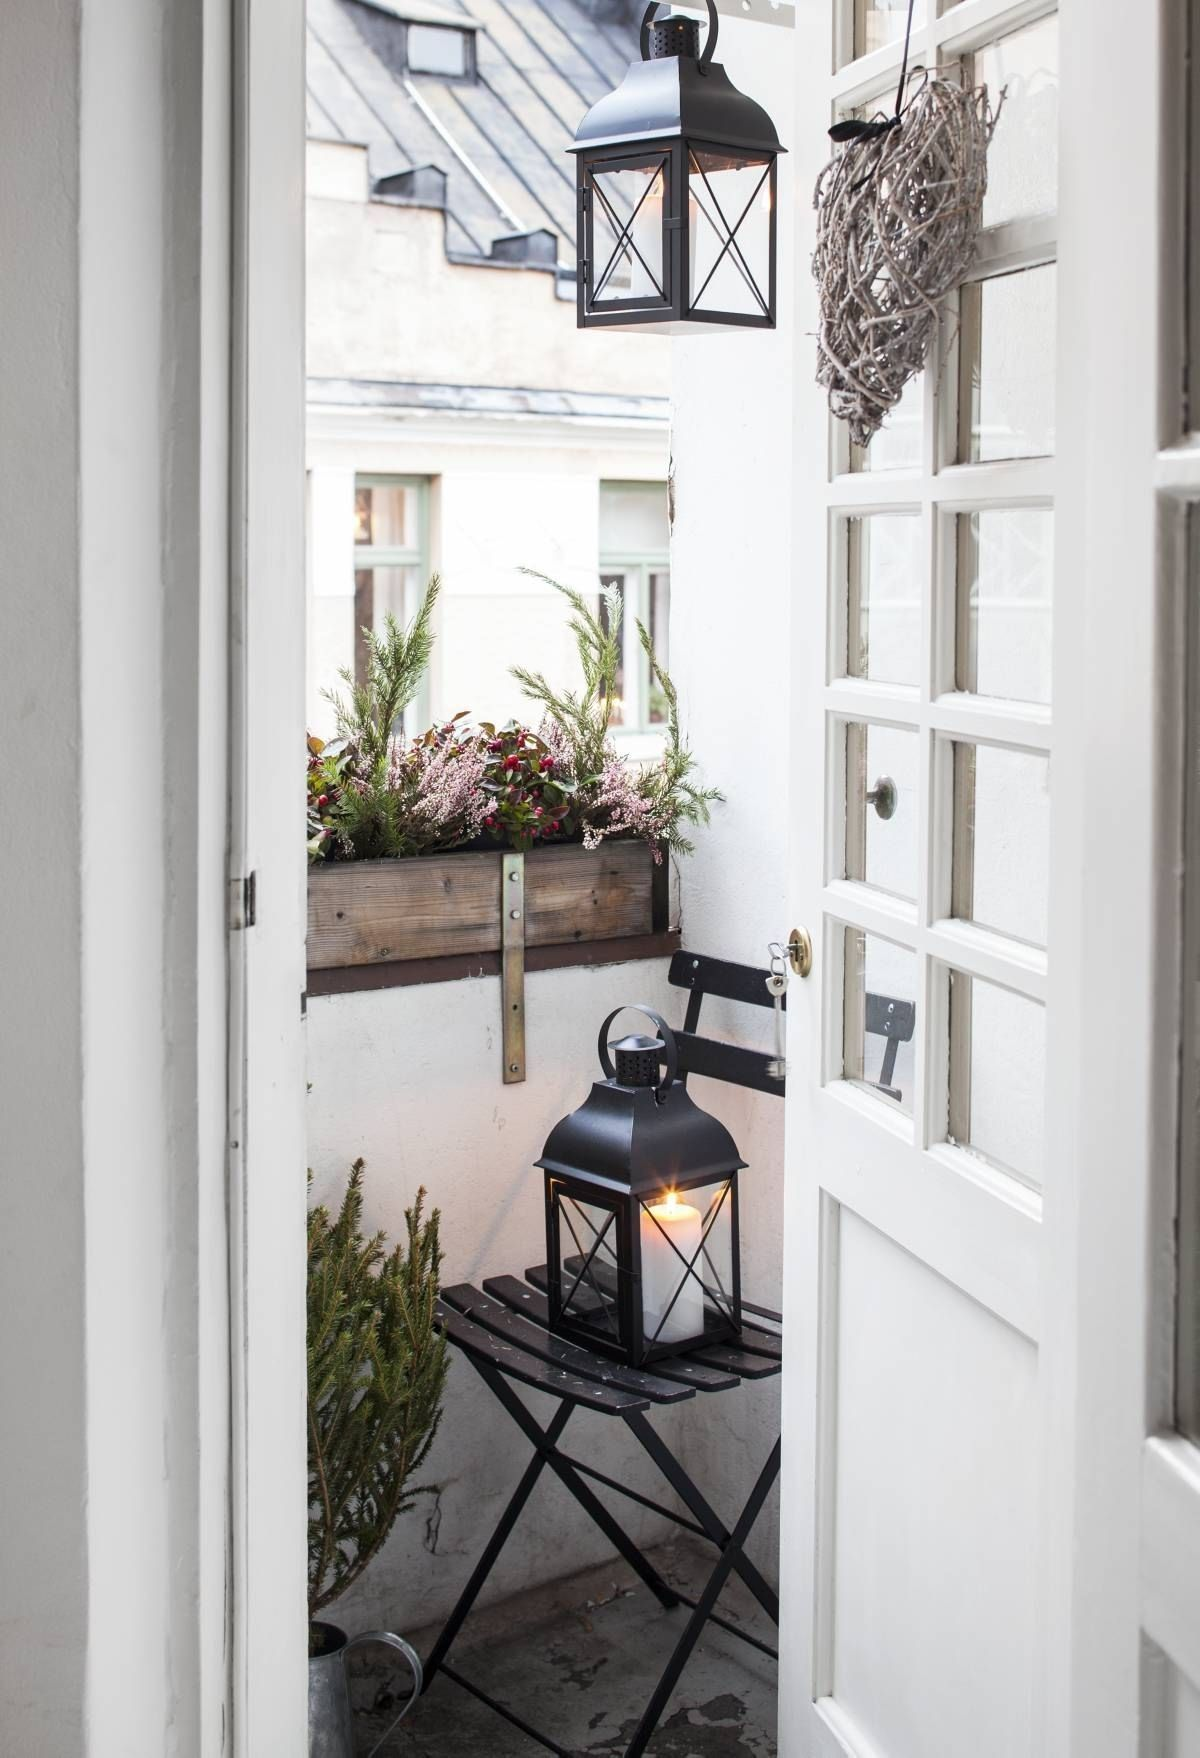 Apartment balcony ideas pictures to pin on pinterest - Small Balconies Tiny Balcony Balcony Plants Balcony Ideas Balcony Garden Patio Ideas Terrace Apartment Balconies Loft Apartments